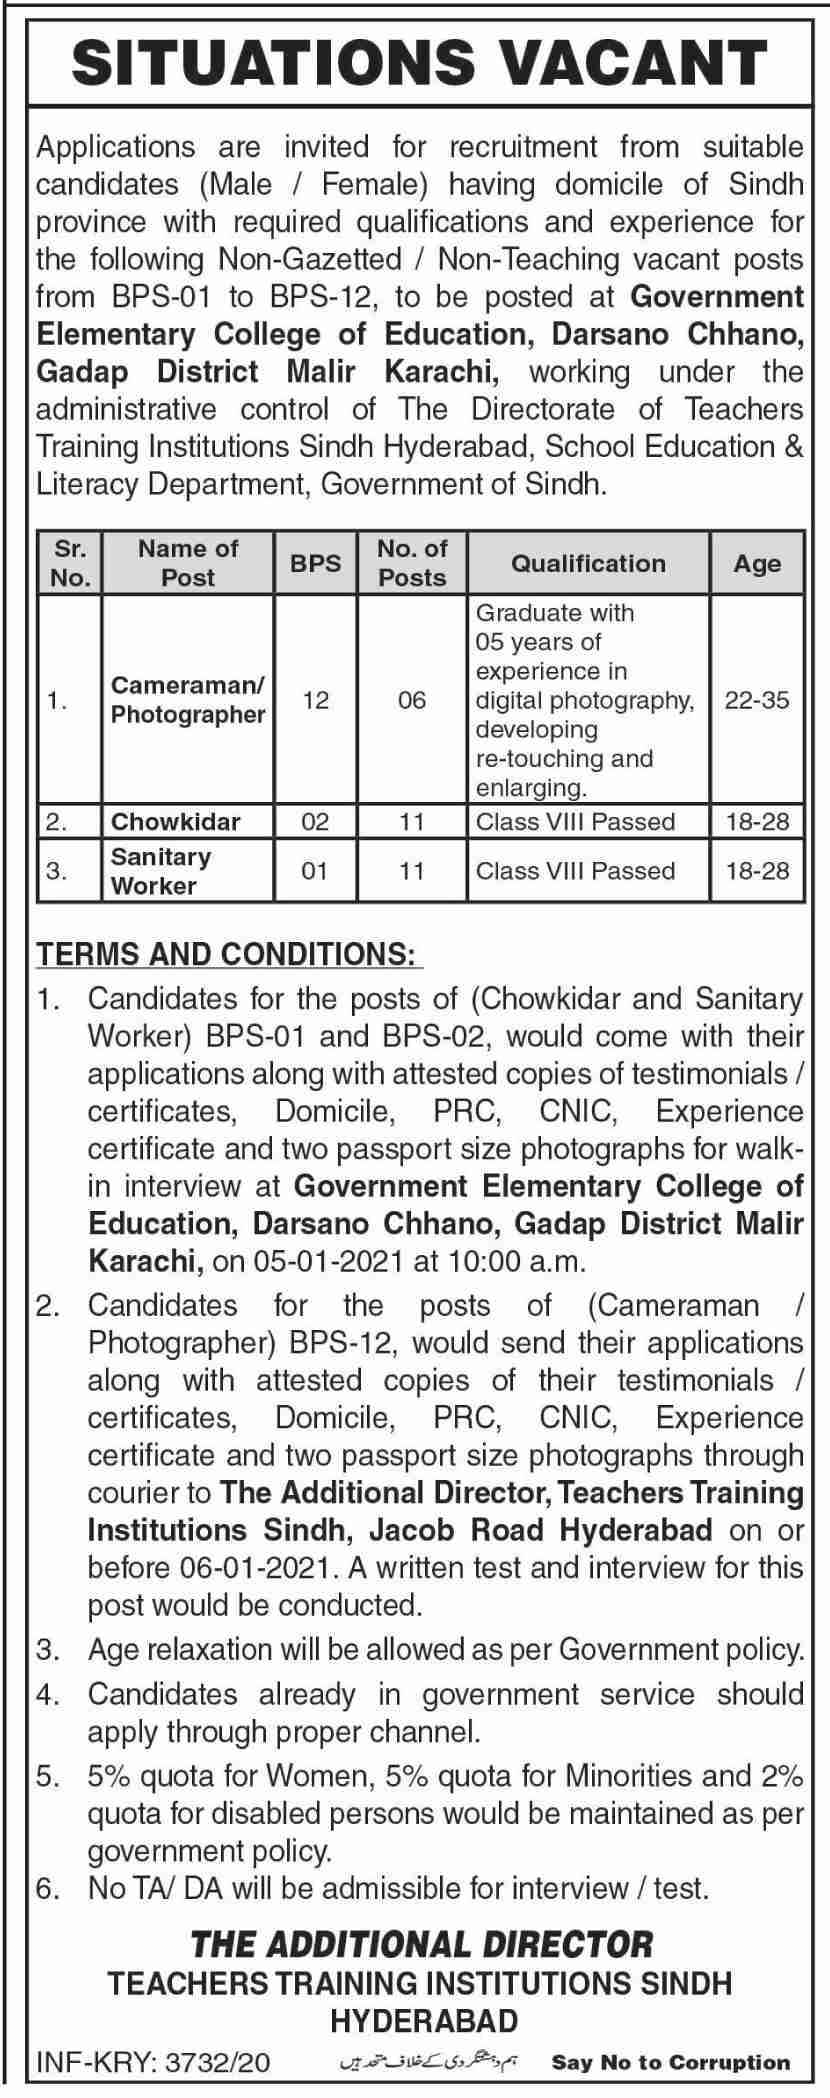 Government Elementary College of Education Jobs 2021 - Download Application Form - Jobs in Karachi 2021 - Govt Jobs 2021 - January 2021